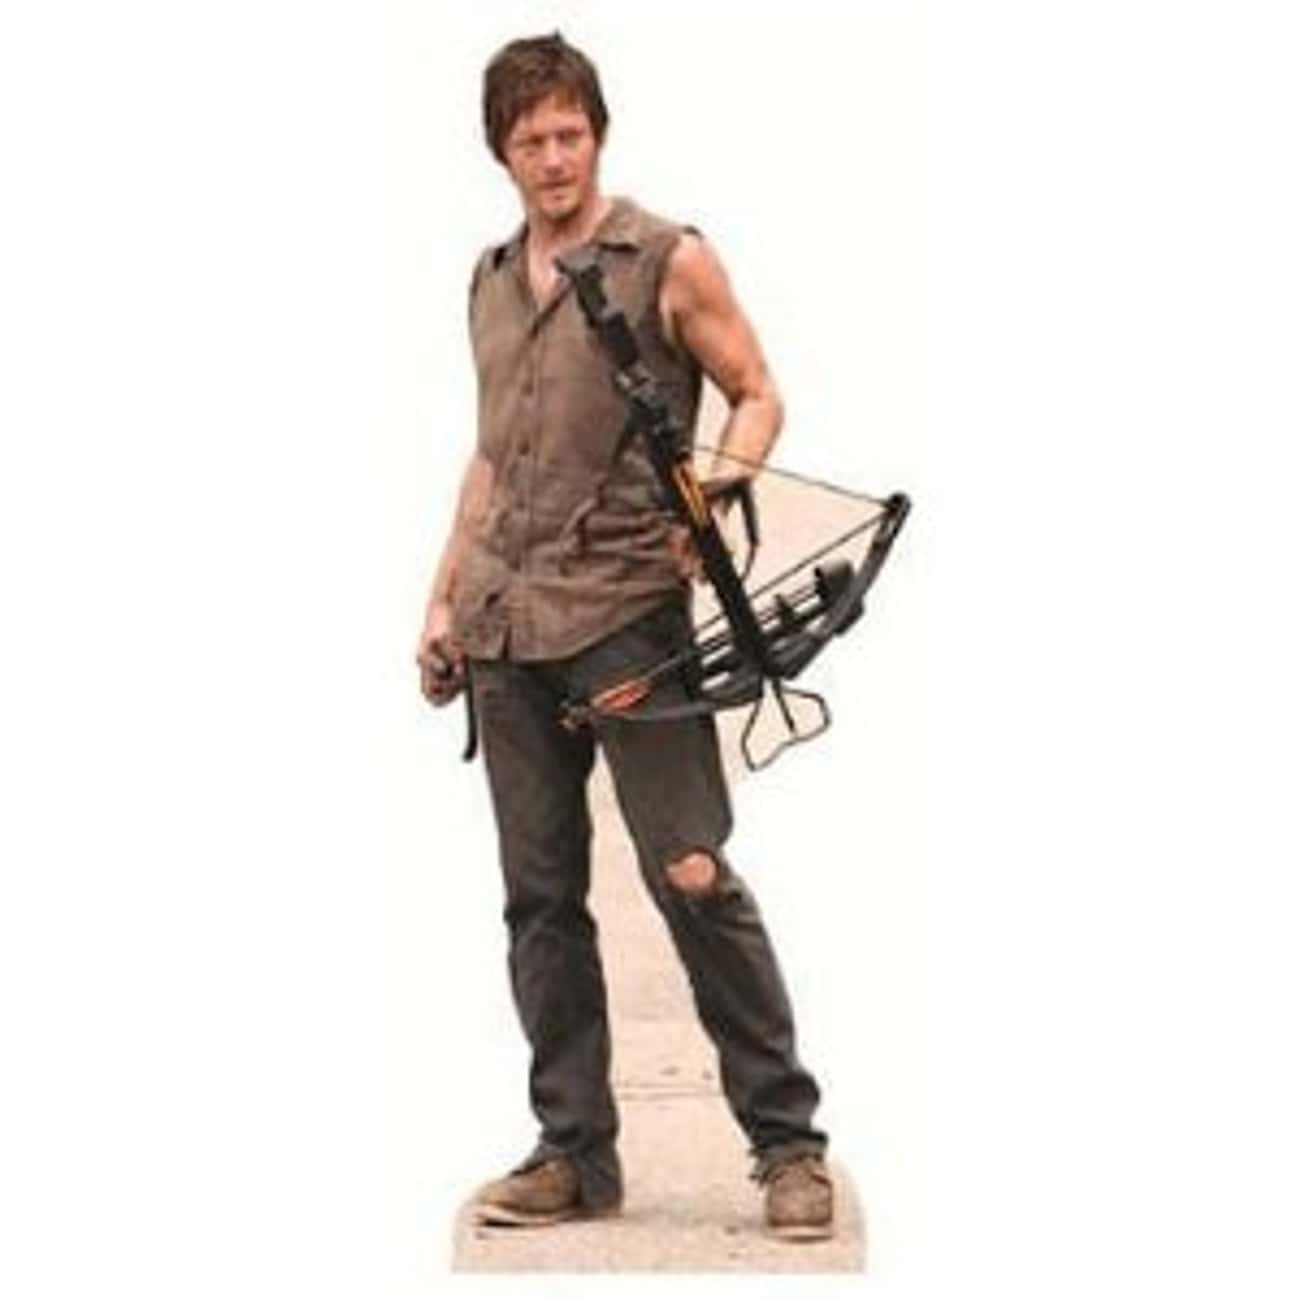 Life-Size Daryl Dixon is listed (or ranked) 3 on the list Perfect Gifts for Walking Dead Fans